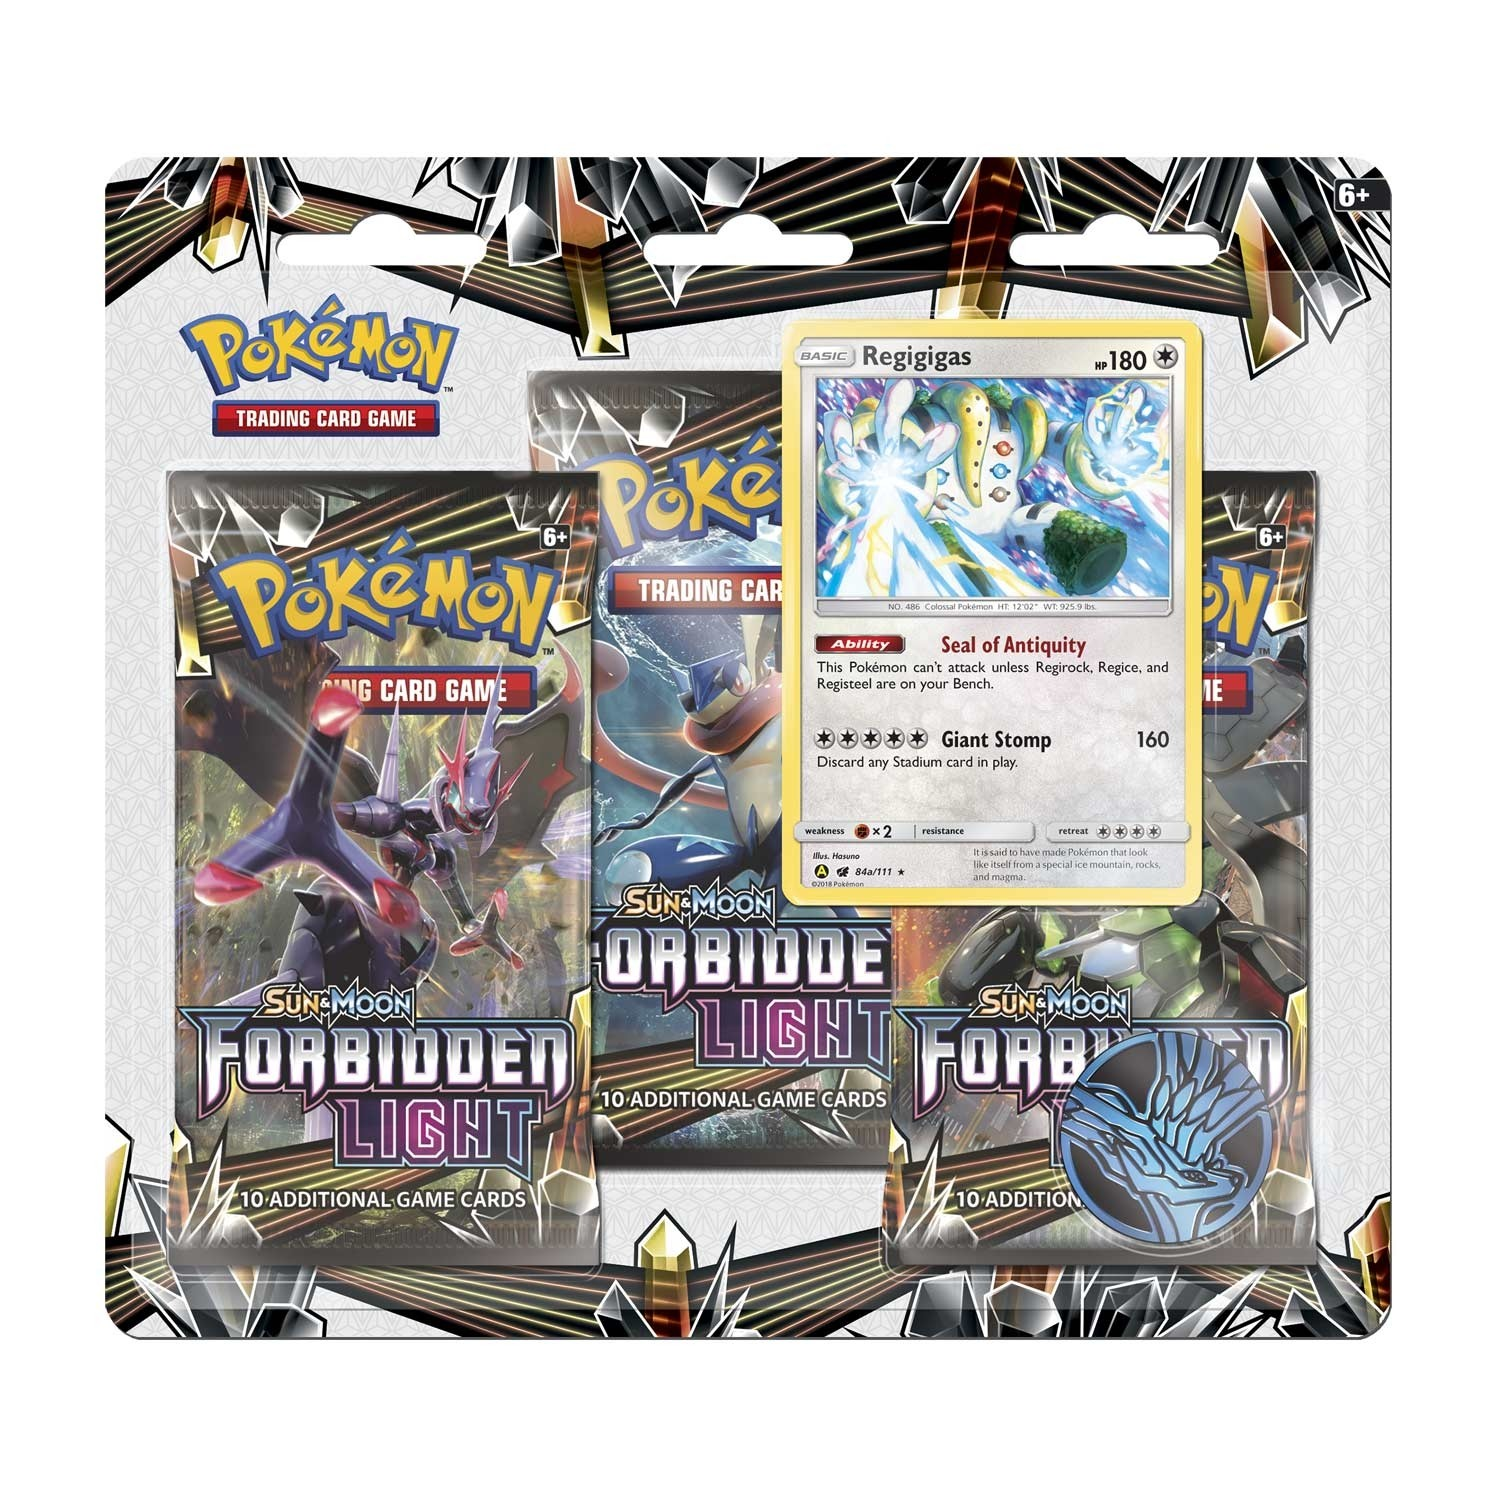 Pokemon TCG Sun & Moon #6 Forbidden Light 3 Booster Packs, Coin & Regigigas Promo Card